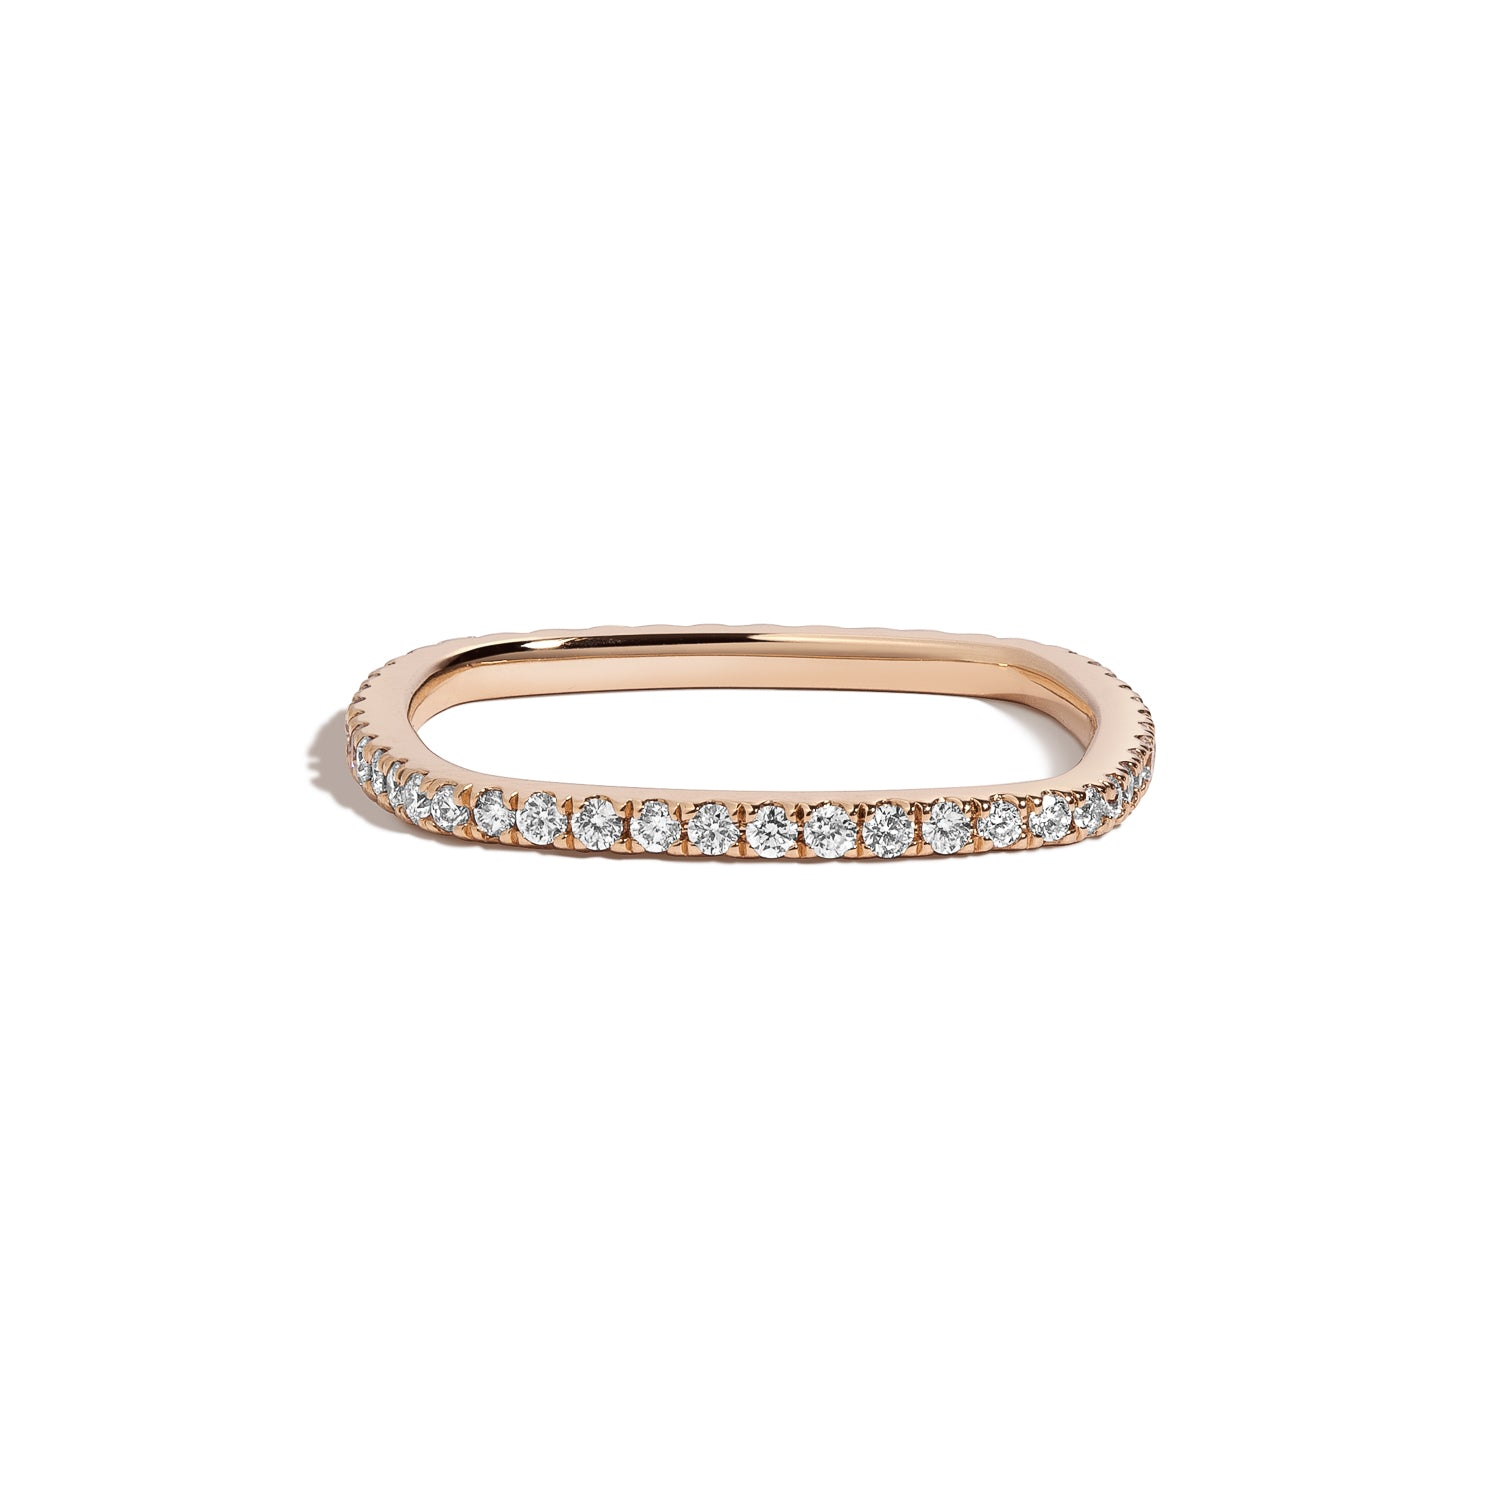 Kare Eternity Band